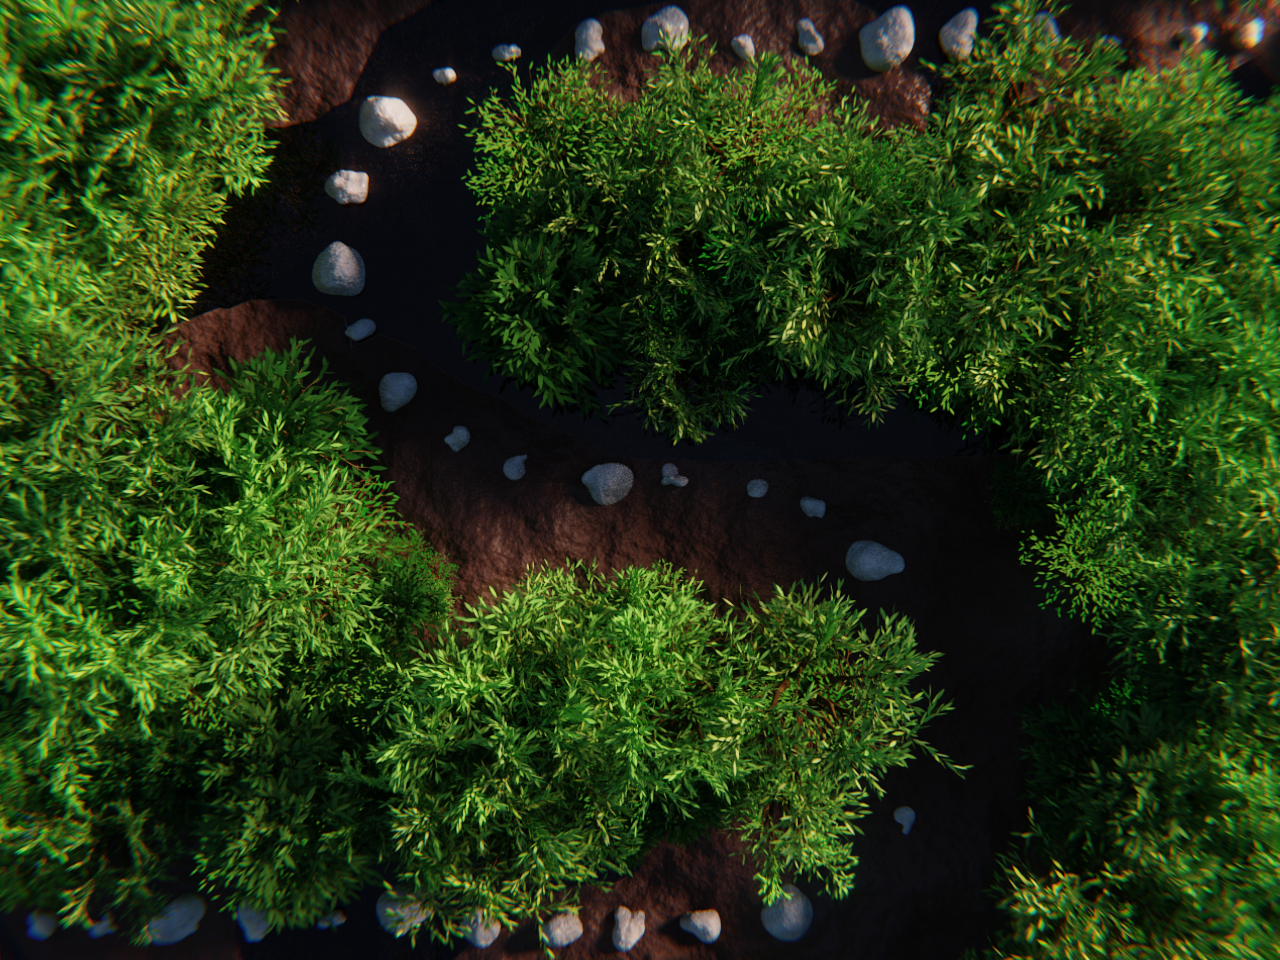 S - 36 Days of Type rocks tree forest abstract design 36 days of type type cycles blender 3d